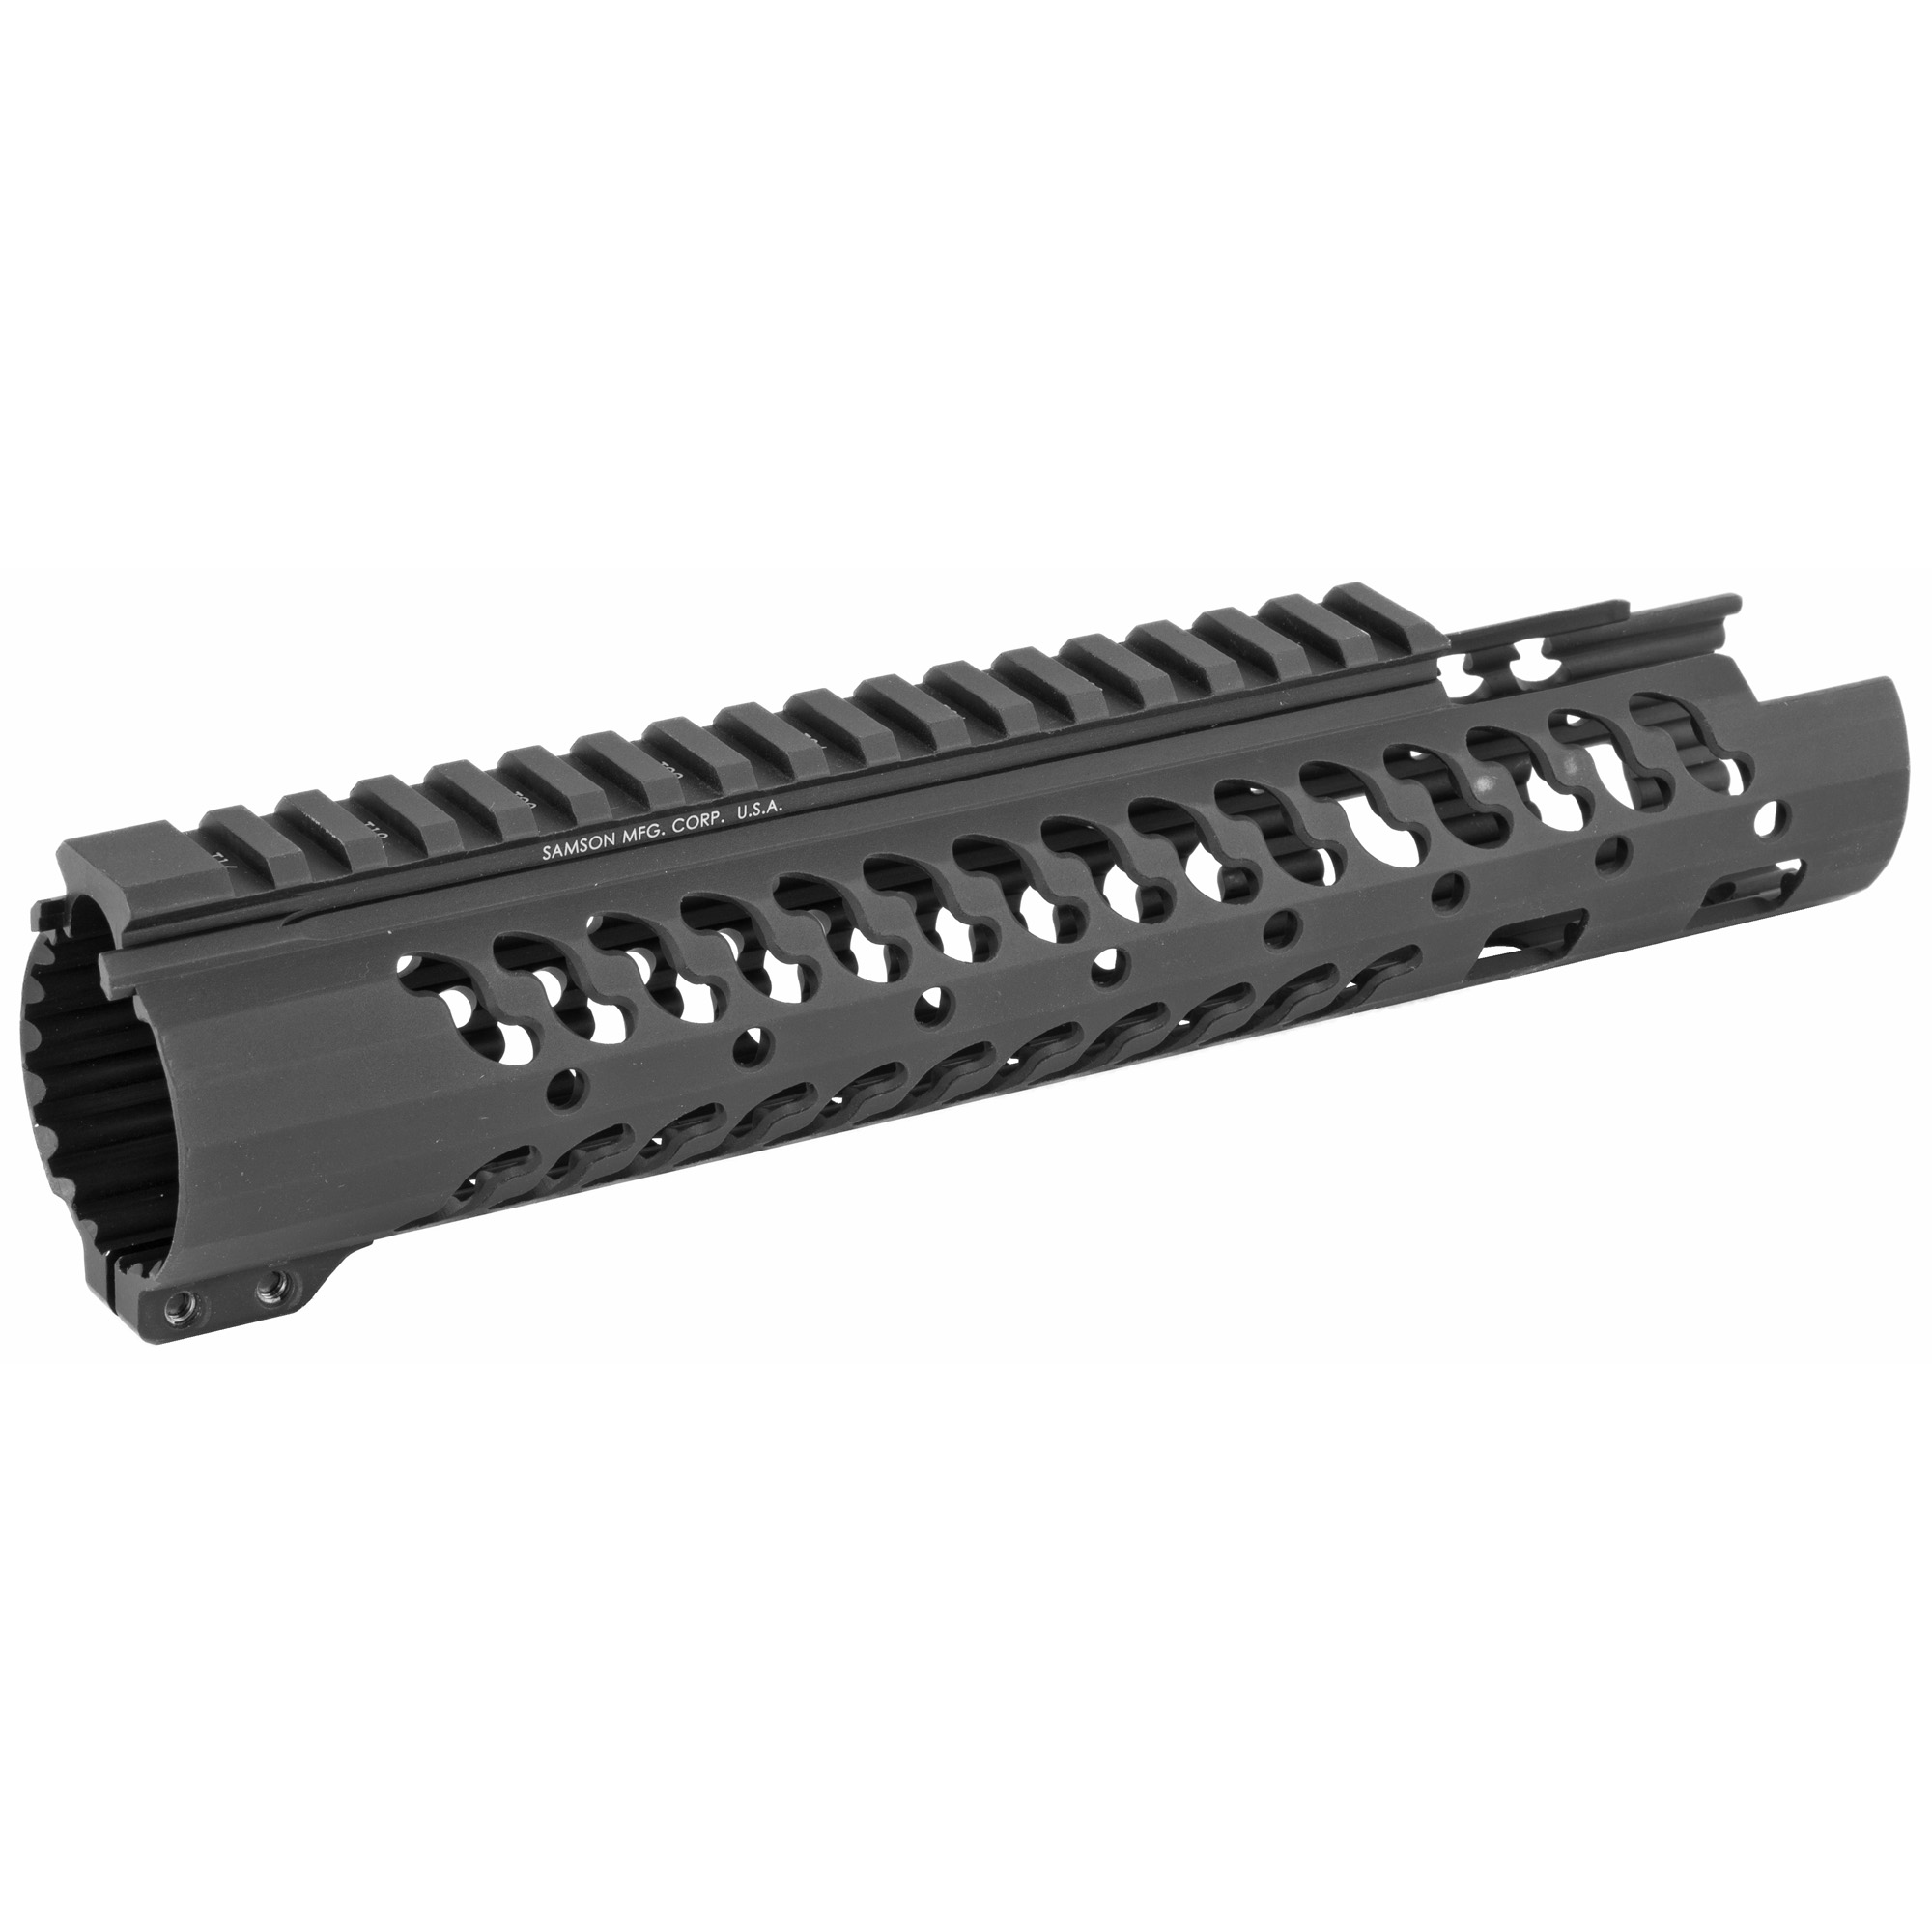 """The Samson Evolution EX Series is the next step forward in free-floating handguards. Being lightweight and durable allows the Samson Evolution EX Series to offer the perfect upgrade for 3-Gun competition shooting"""" law enforcement and military personnel or weekend enthusiasts. Accessory Picatinny rails can be added or removed at any of 7 positions around the rail and any place along the length of the tube. Rail accommodates most piston systems. This is the 7"""" Evolution EX Evolution Rail for the AR-15. Inside diameter fits most suppressors (1.56"""").Includes: Thermal bushings"""" Two (2) 2"""" accessory rail kits"""" One (1) 4"""" accessory rail kit and wrenches."""